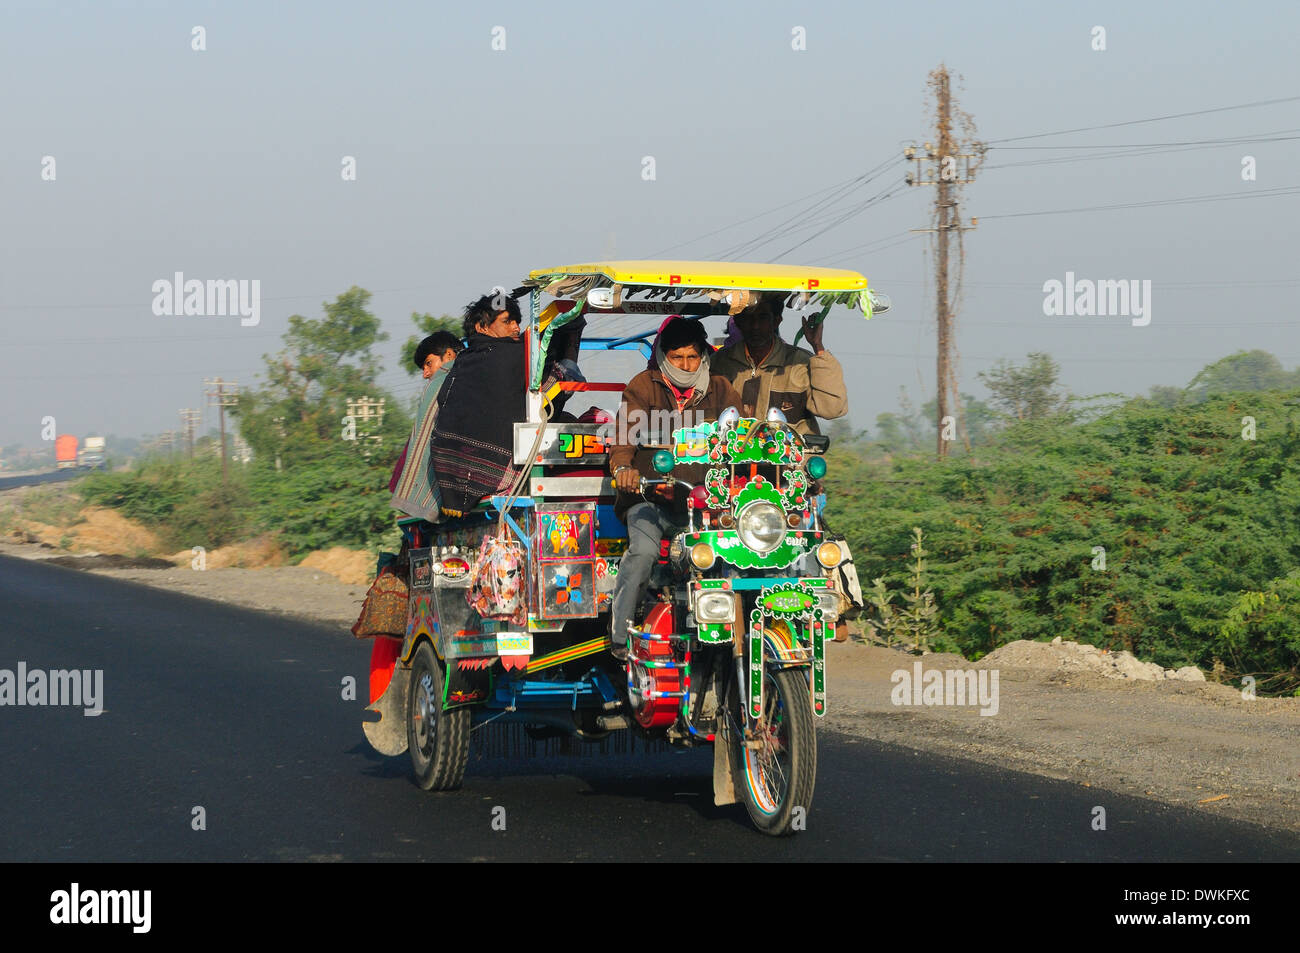 Road transport in Western India, Gujarat, India, Asia - Stock Image